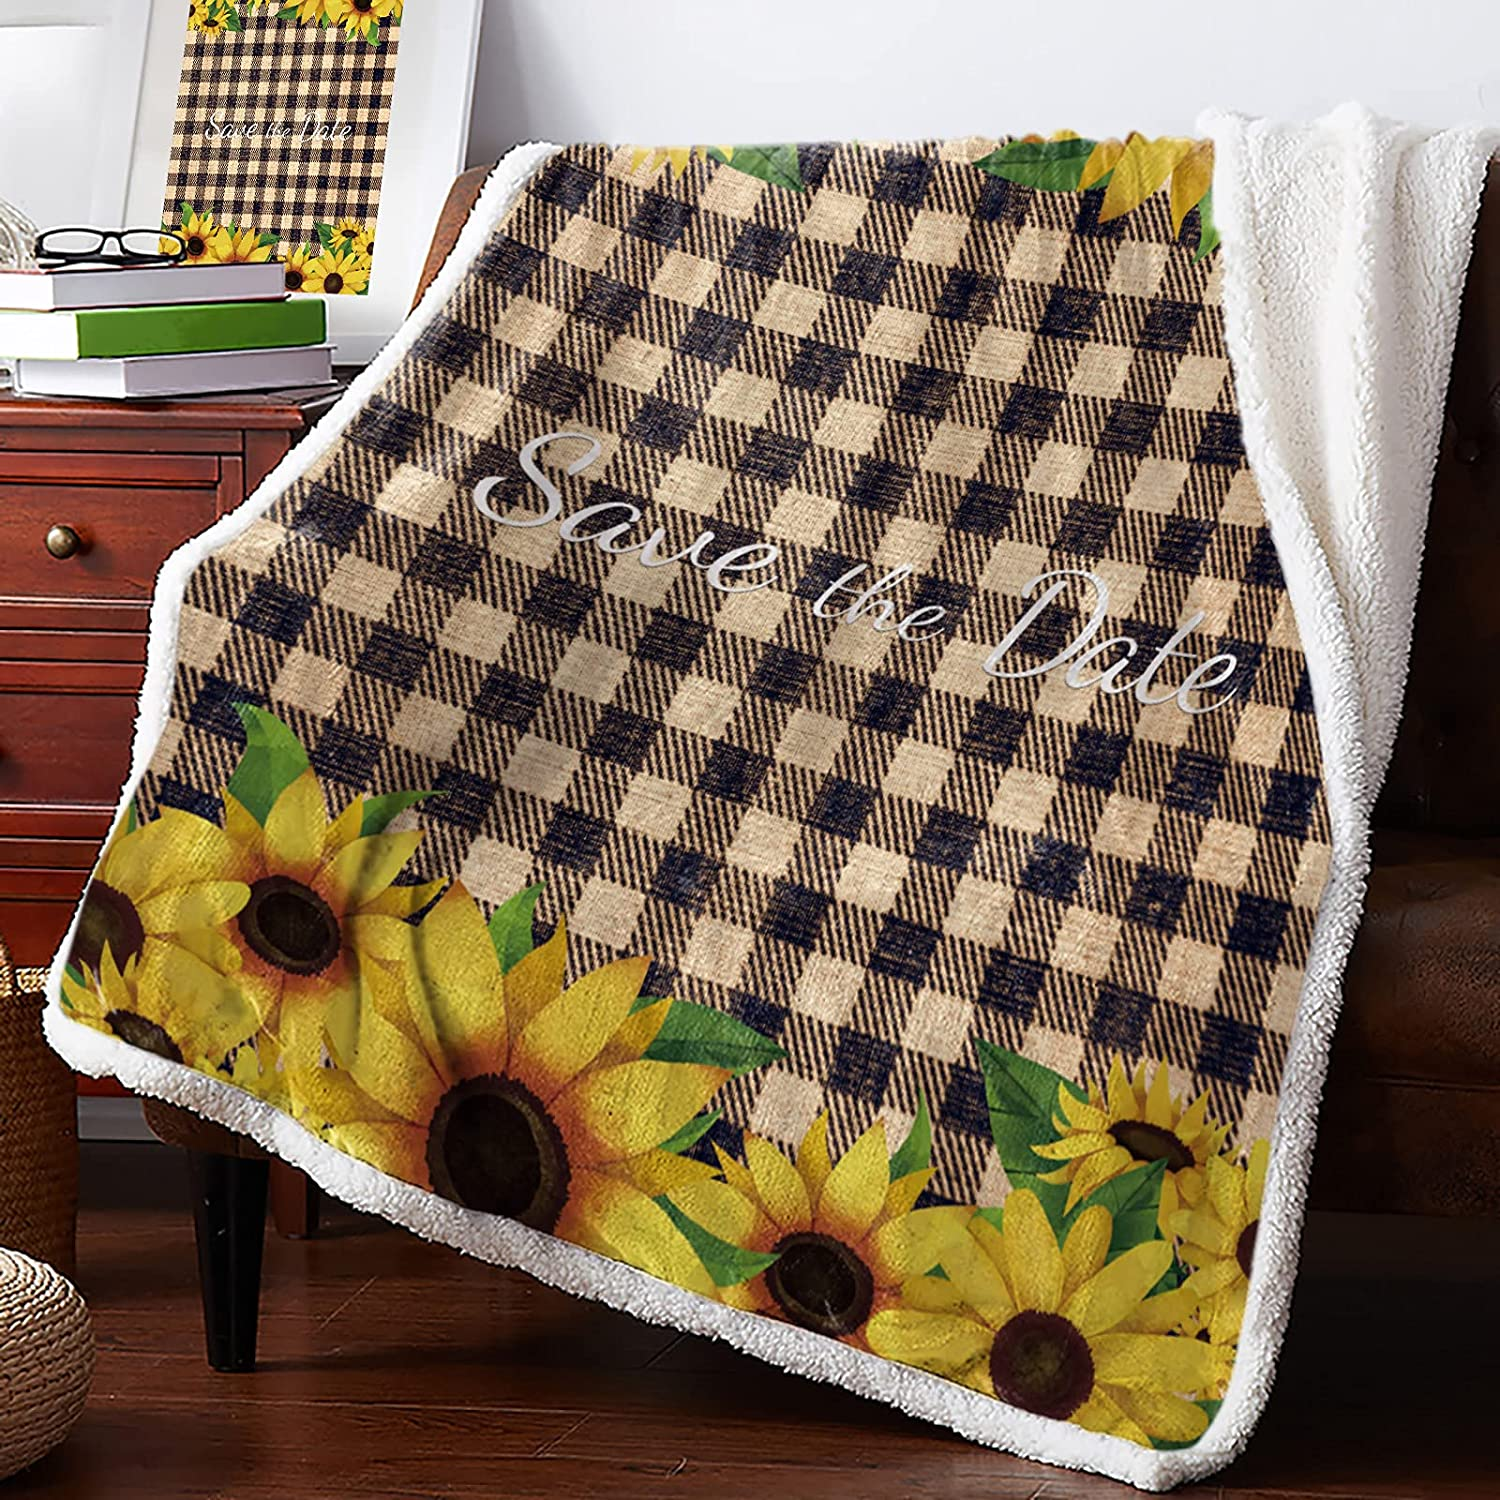 IDOWMAT Sherpa Fleece Blanket Animer and price revision 40x50 Rev Soft Fluffy 5% OFF Plush in